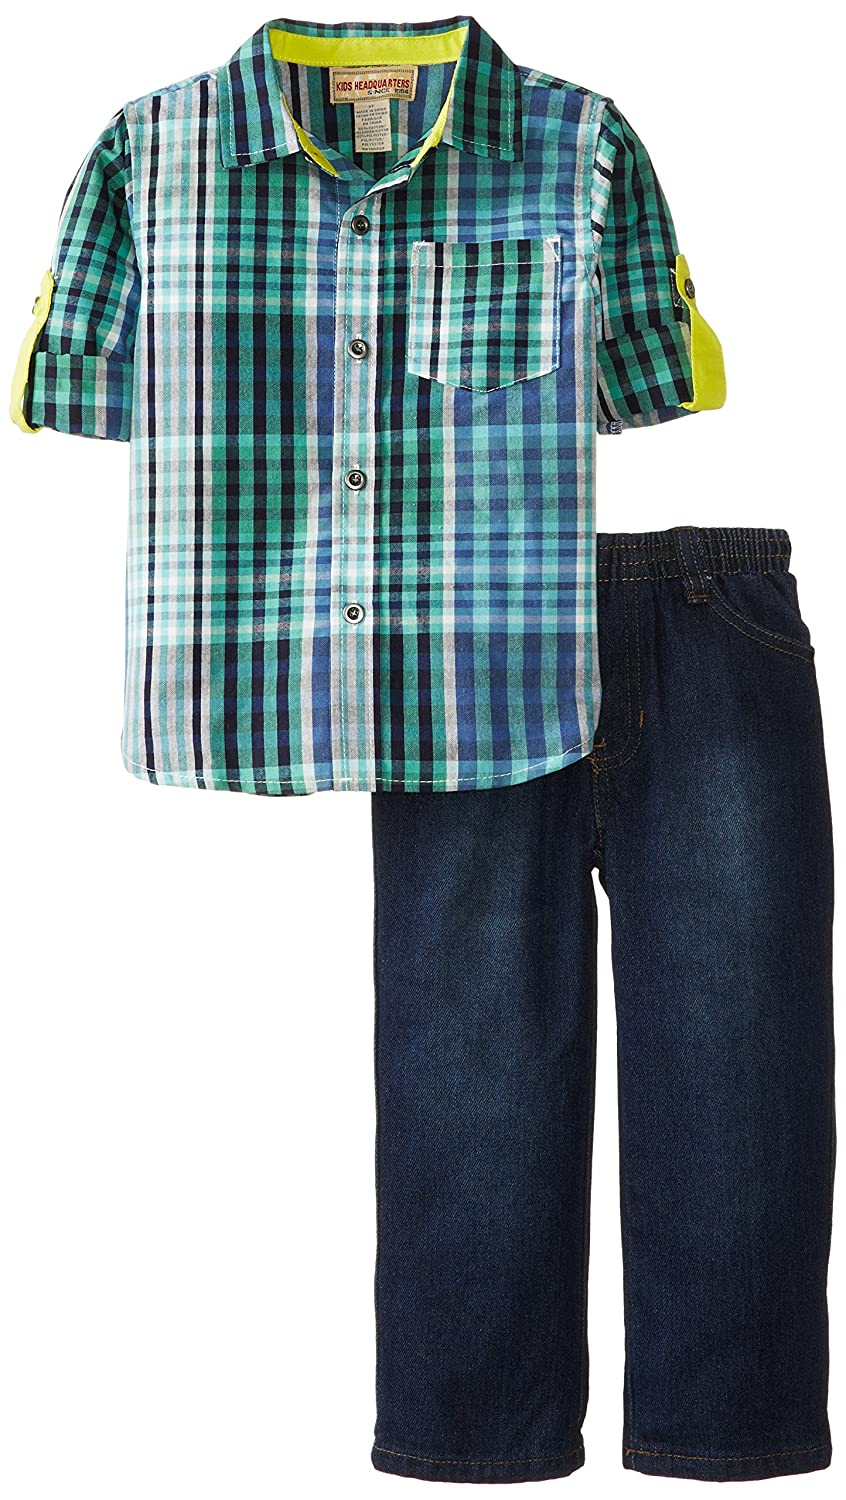 Kids Headquarters Little Boys Roll Up-Sleeve Shirt with Jean Two-Piece Set Kids Headquarters Boys 2-7 Sets 10452001-99